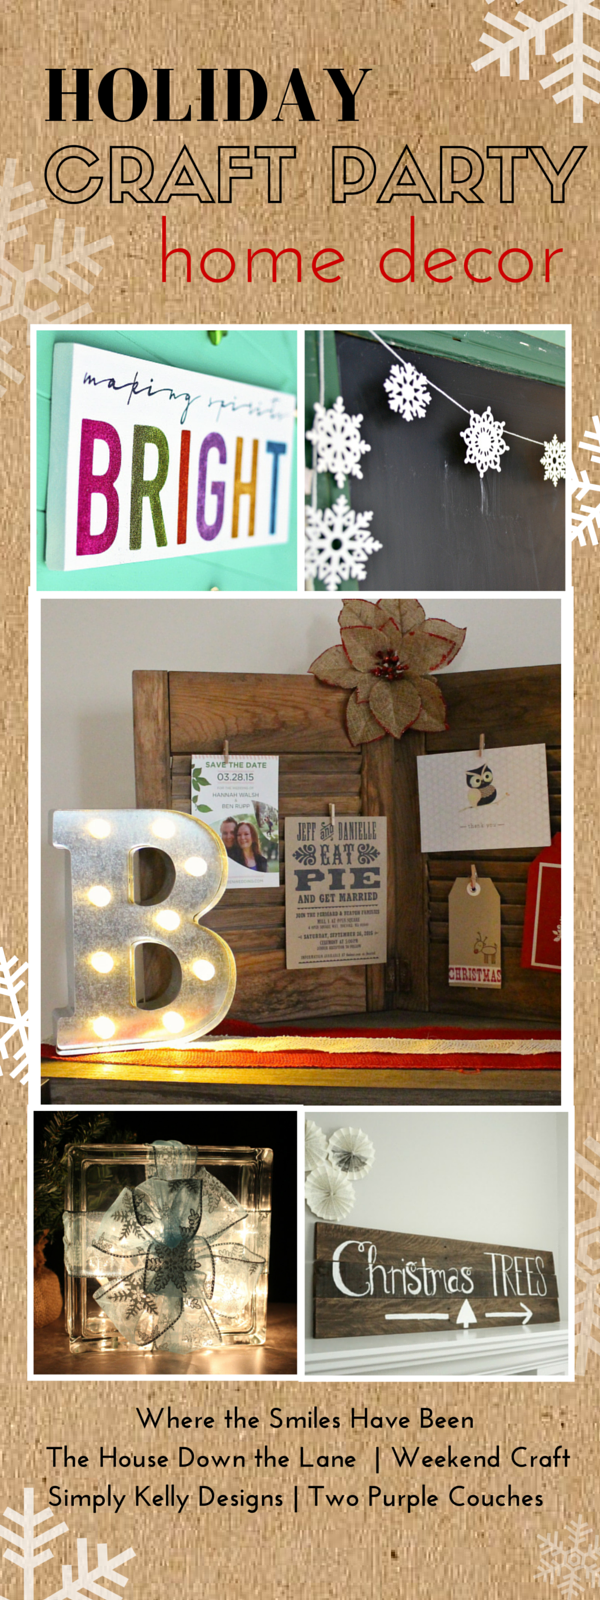 Beautiful DIY holiday home decor ideas! These would make great gifts, too! Join us for our Holiday Craft Part - a week full of holiday crafts, creative ideas and inspiration!